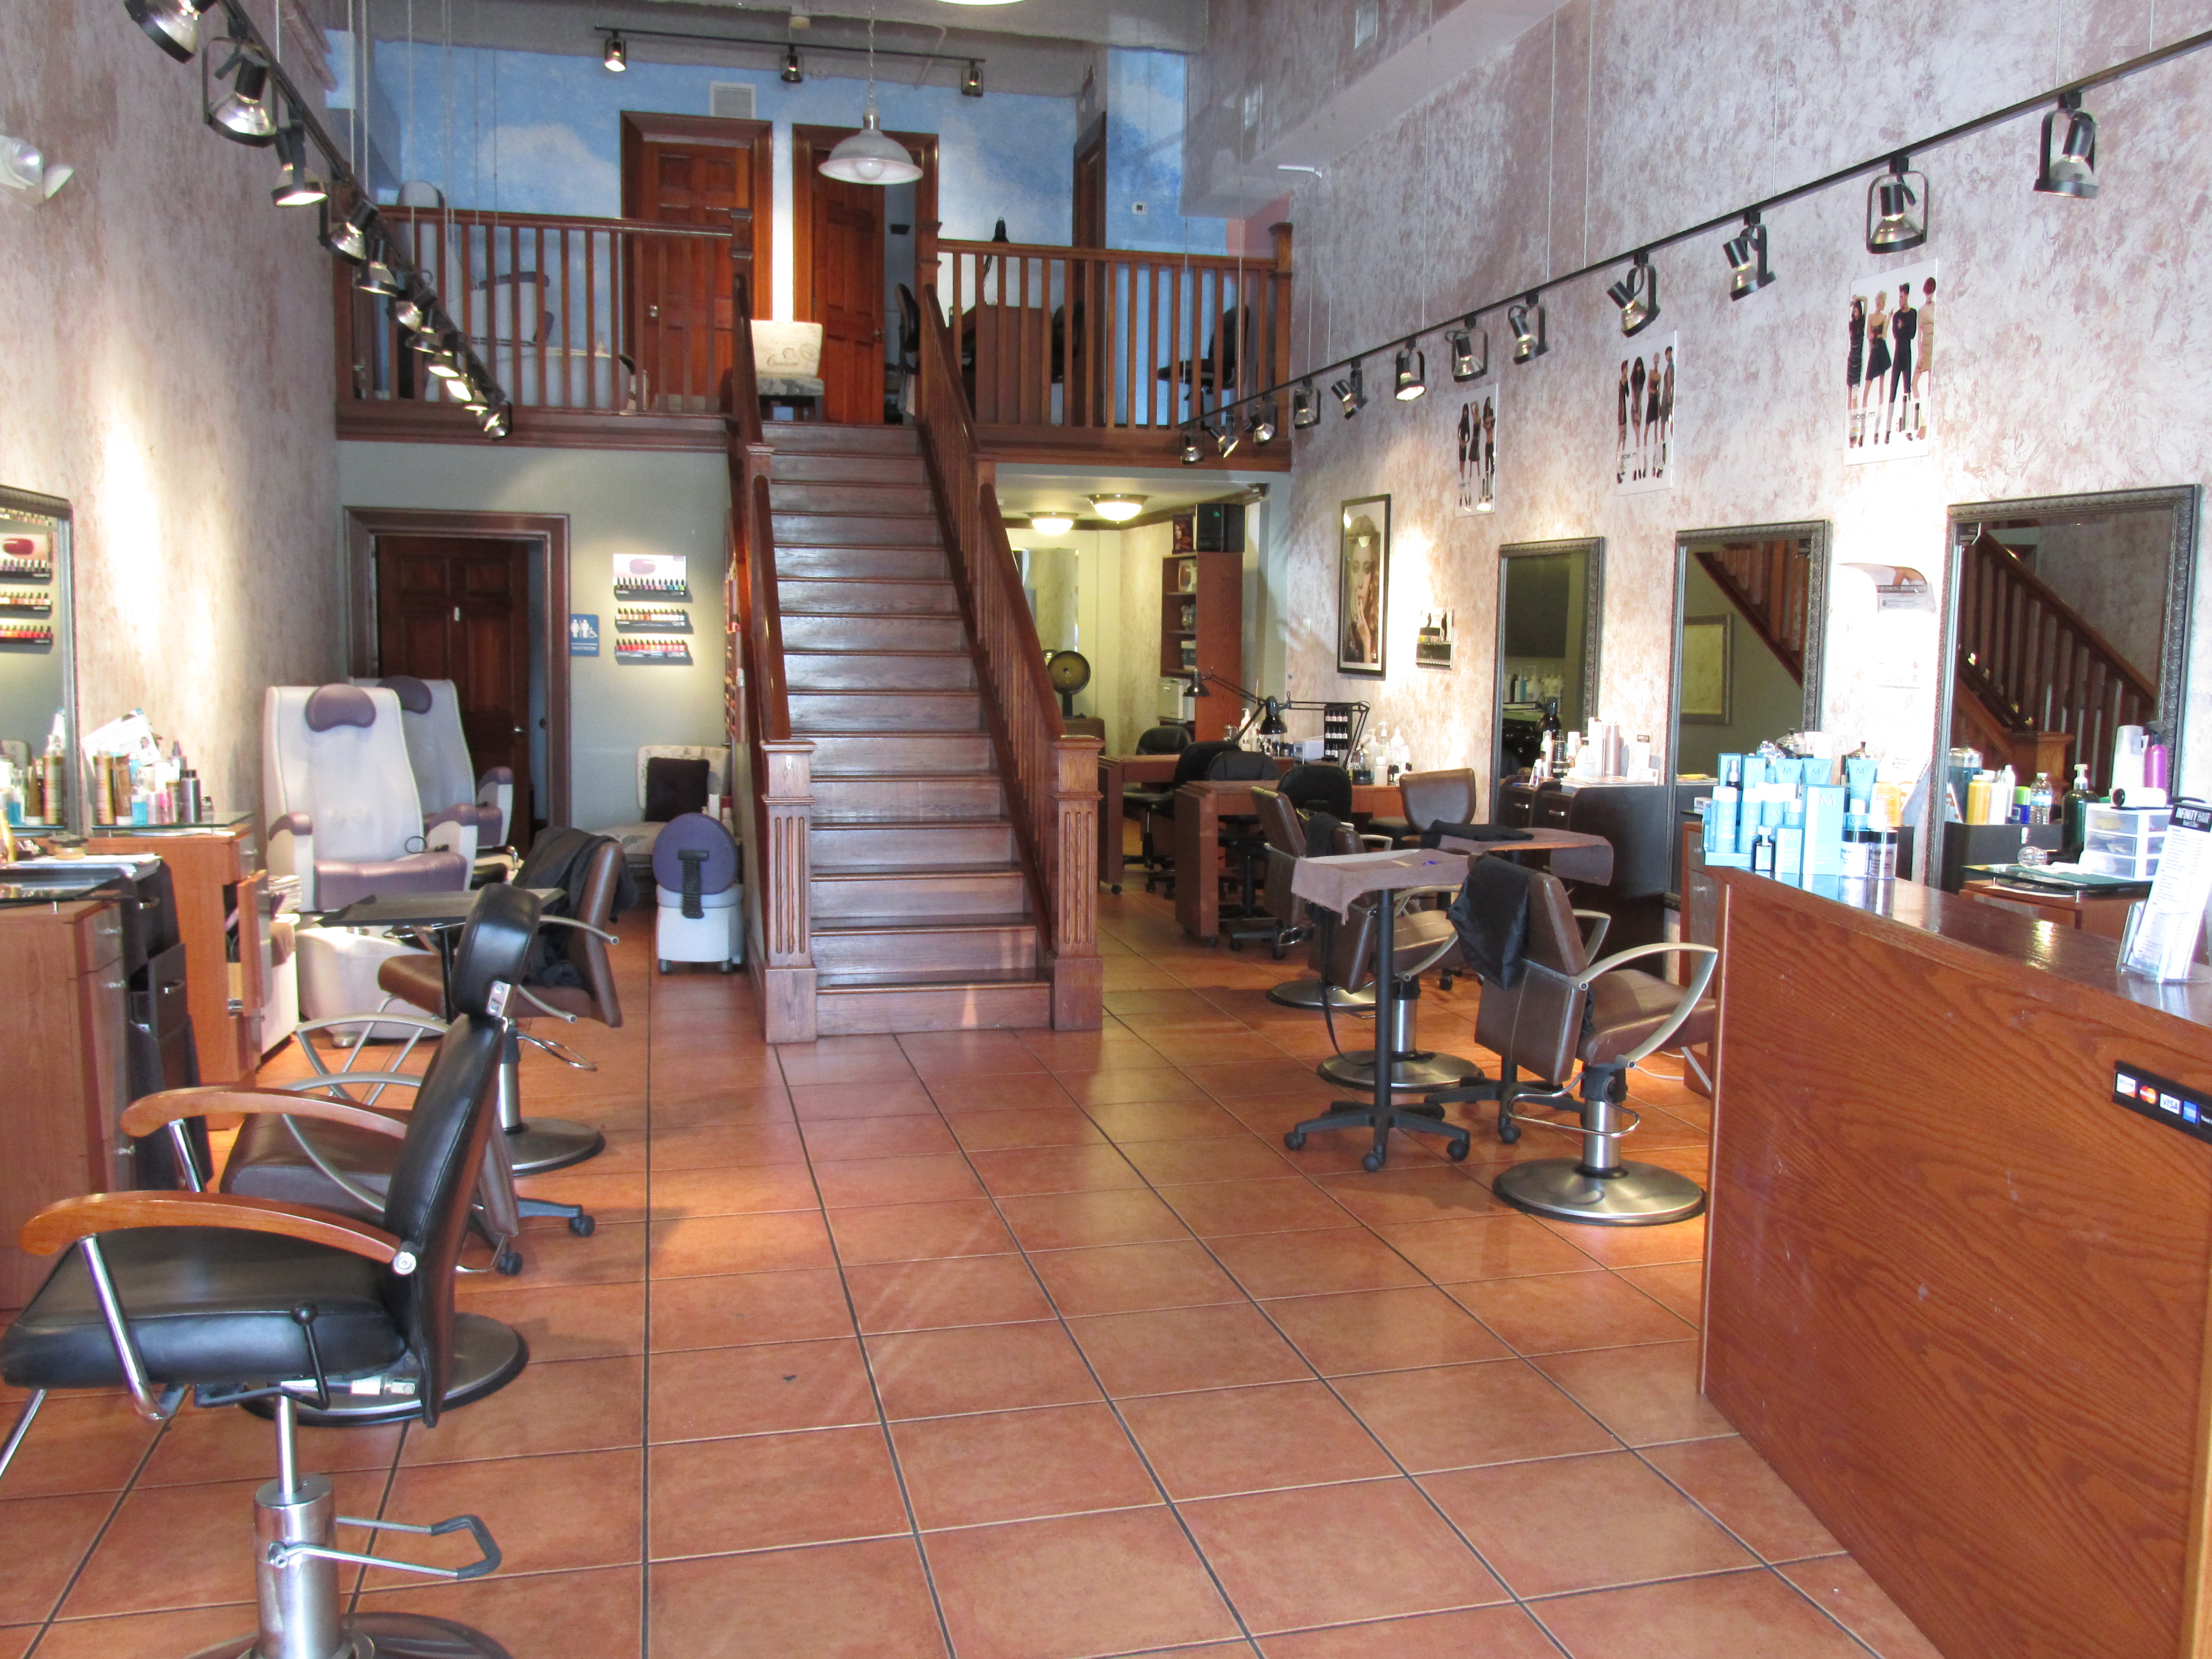 Infinity hair nails skin and massage key west our keys for A1 beauty salon key west